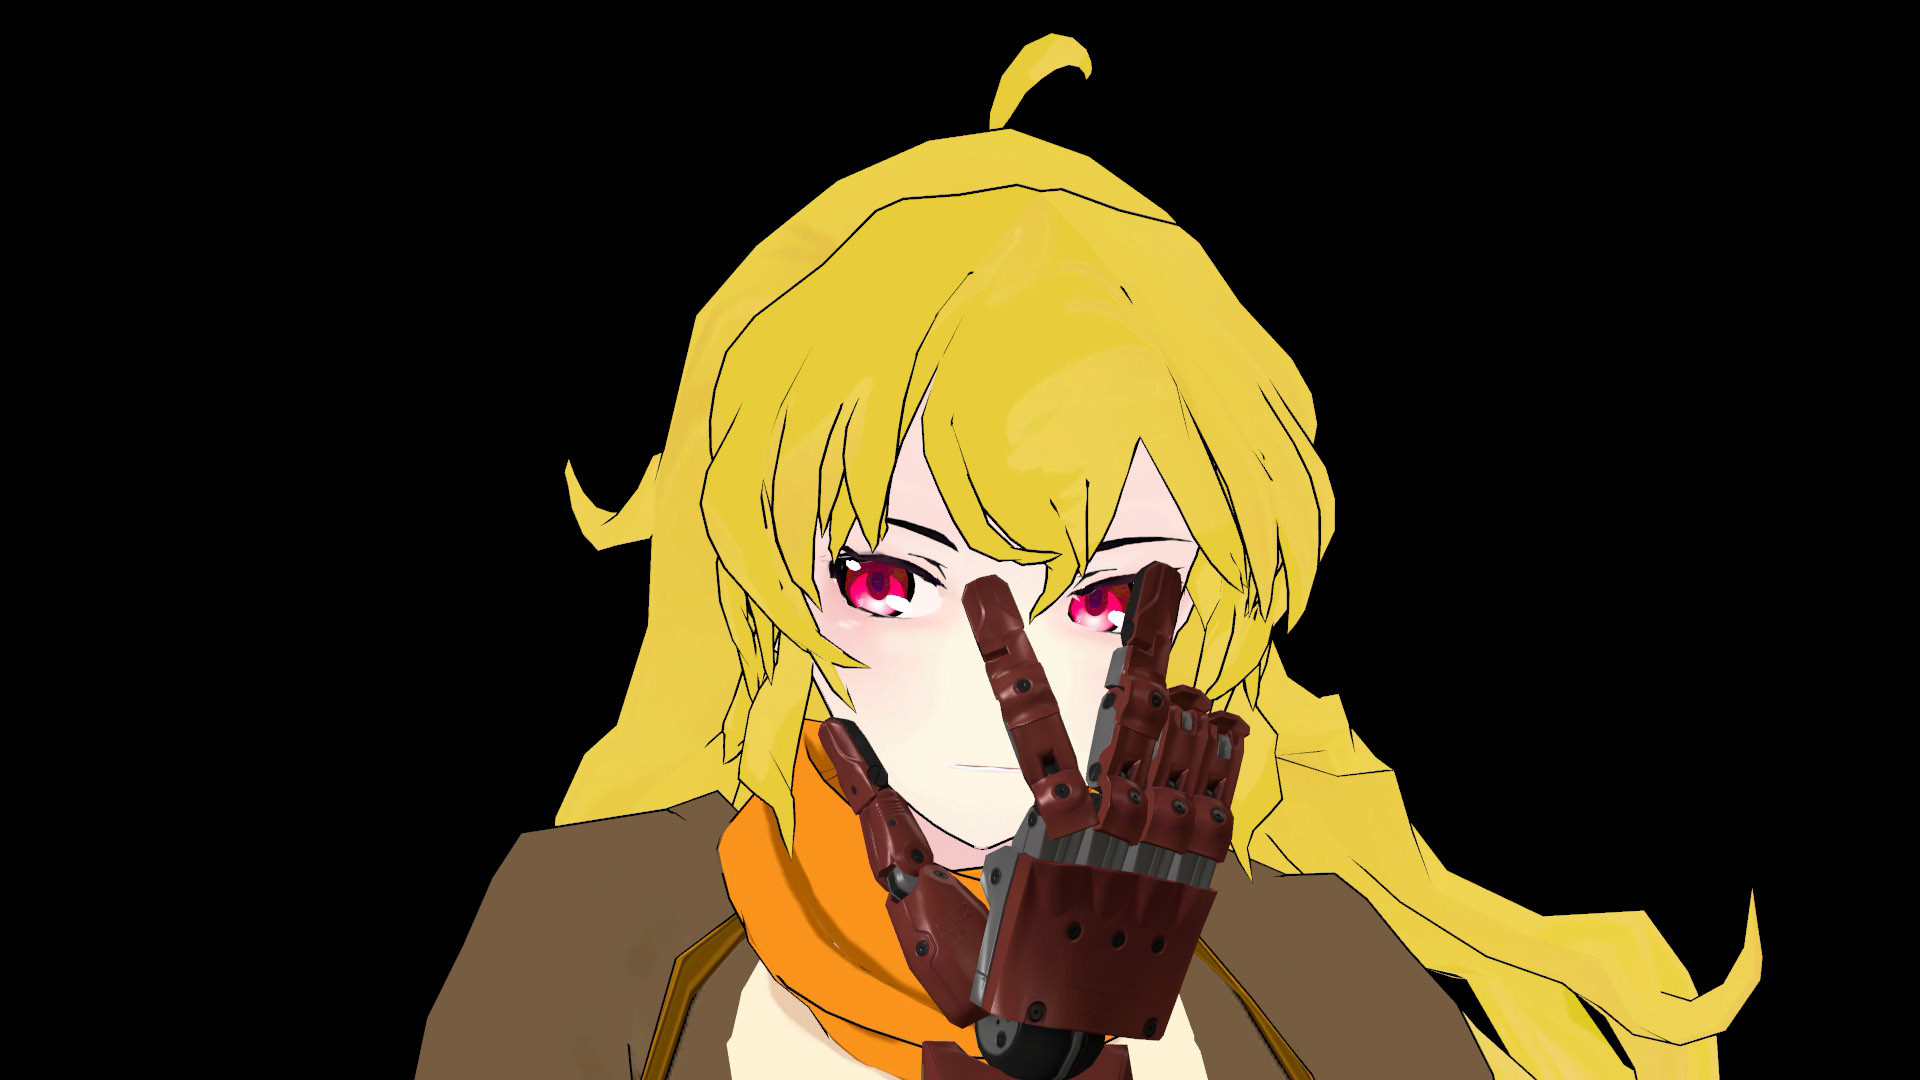 Res: 1920x1080, Metal Gear Solid V: The Phantom Pain Yang Xiao Long yellow vertebrate  fictional character cartoon